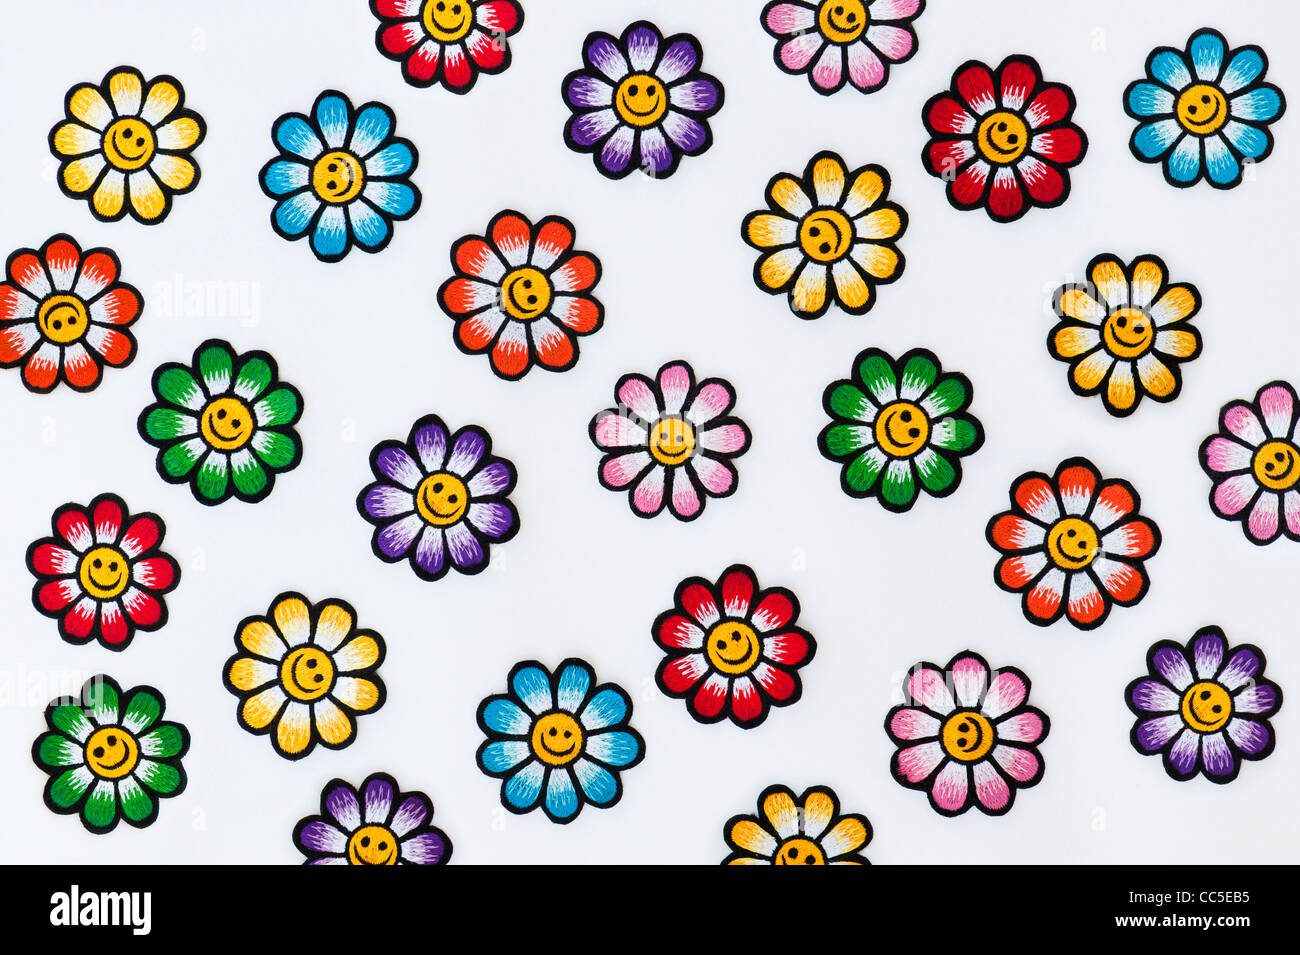 Smiley Flowers Stock Photos Smiley Flowers Stock Images Alamy